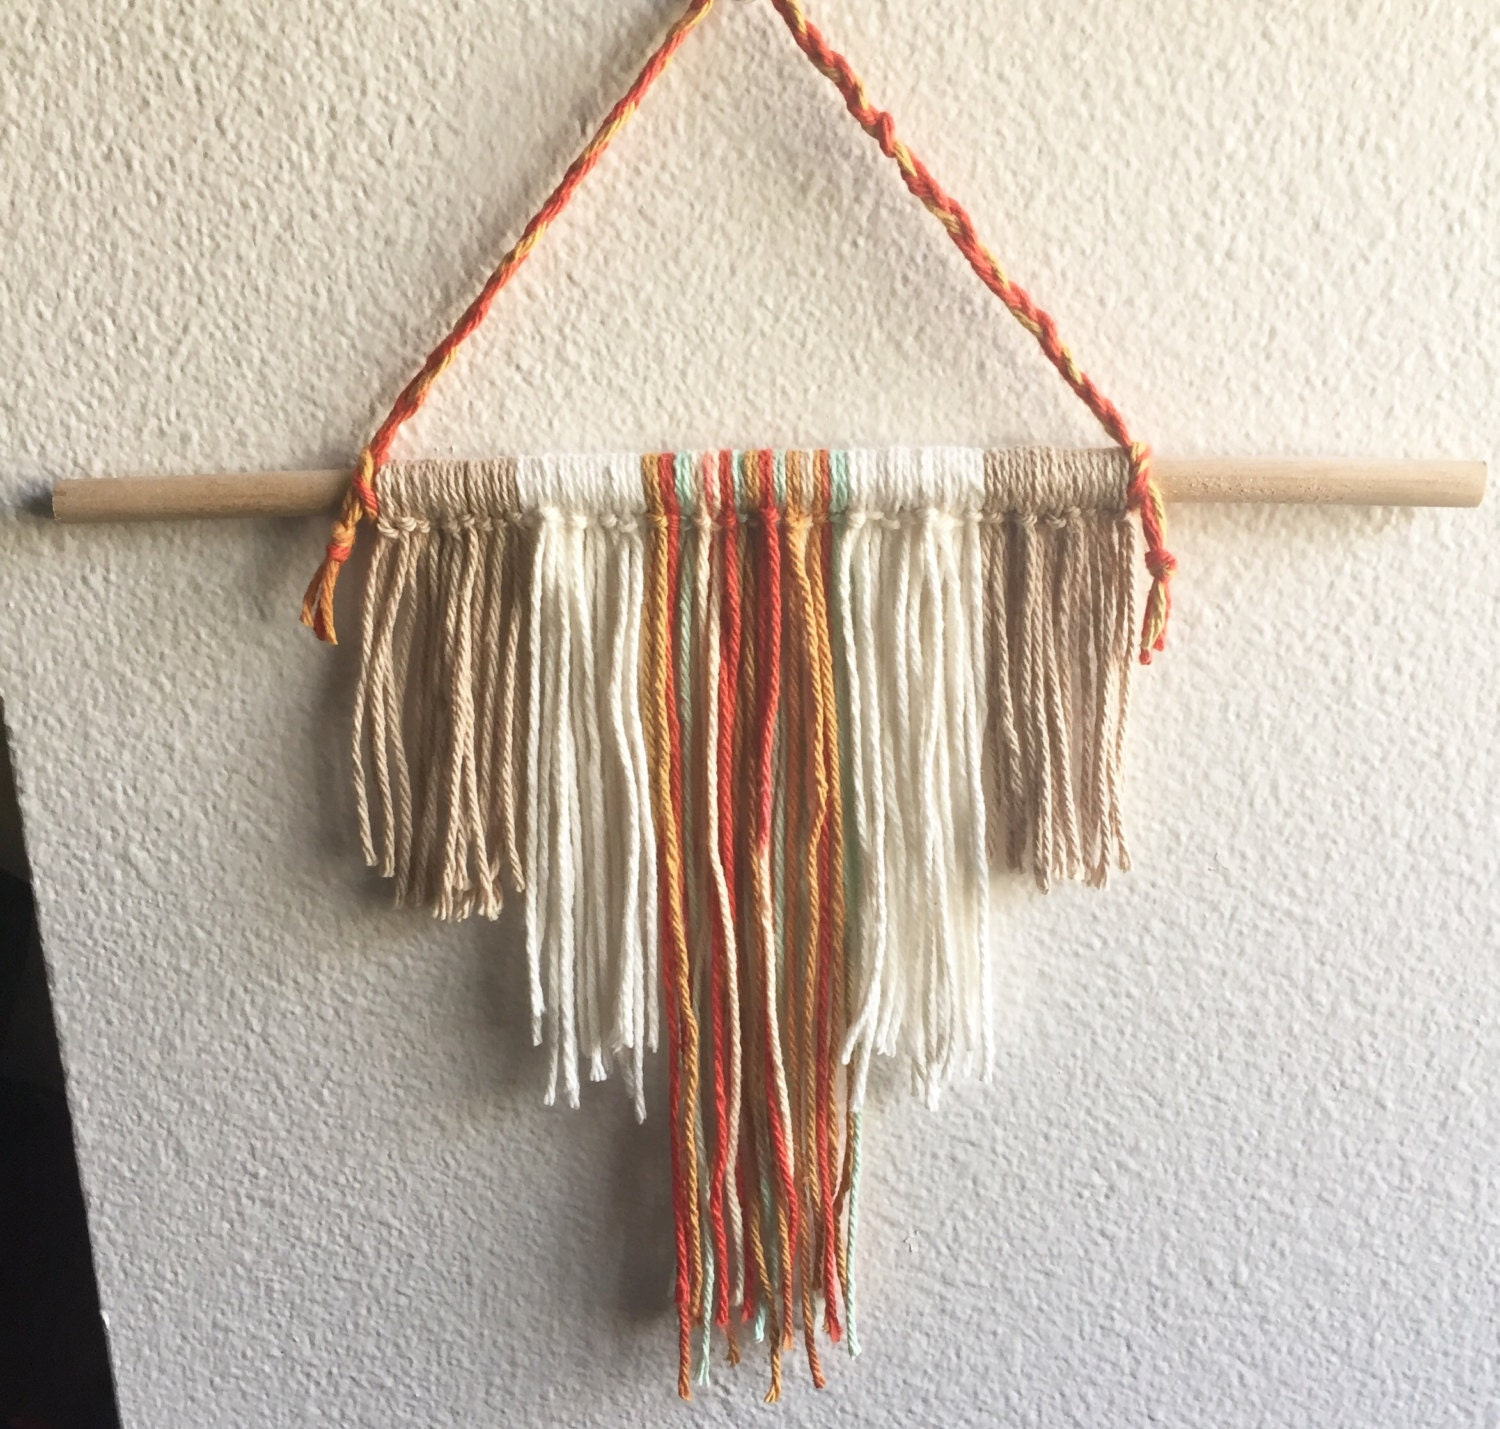 Dorm Room Wall Decor Etsy : Natural yarn wall hanging boho inspired room decor dorm by